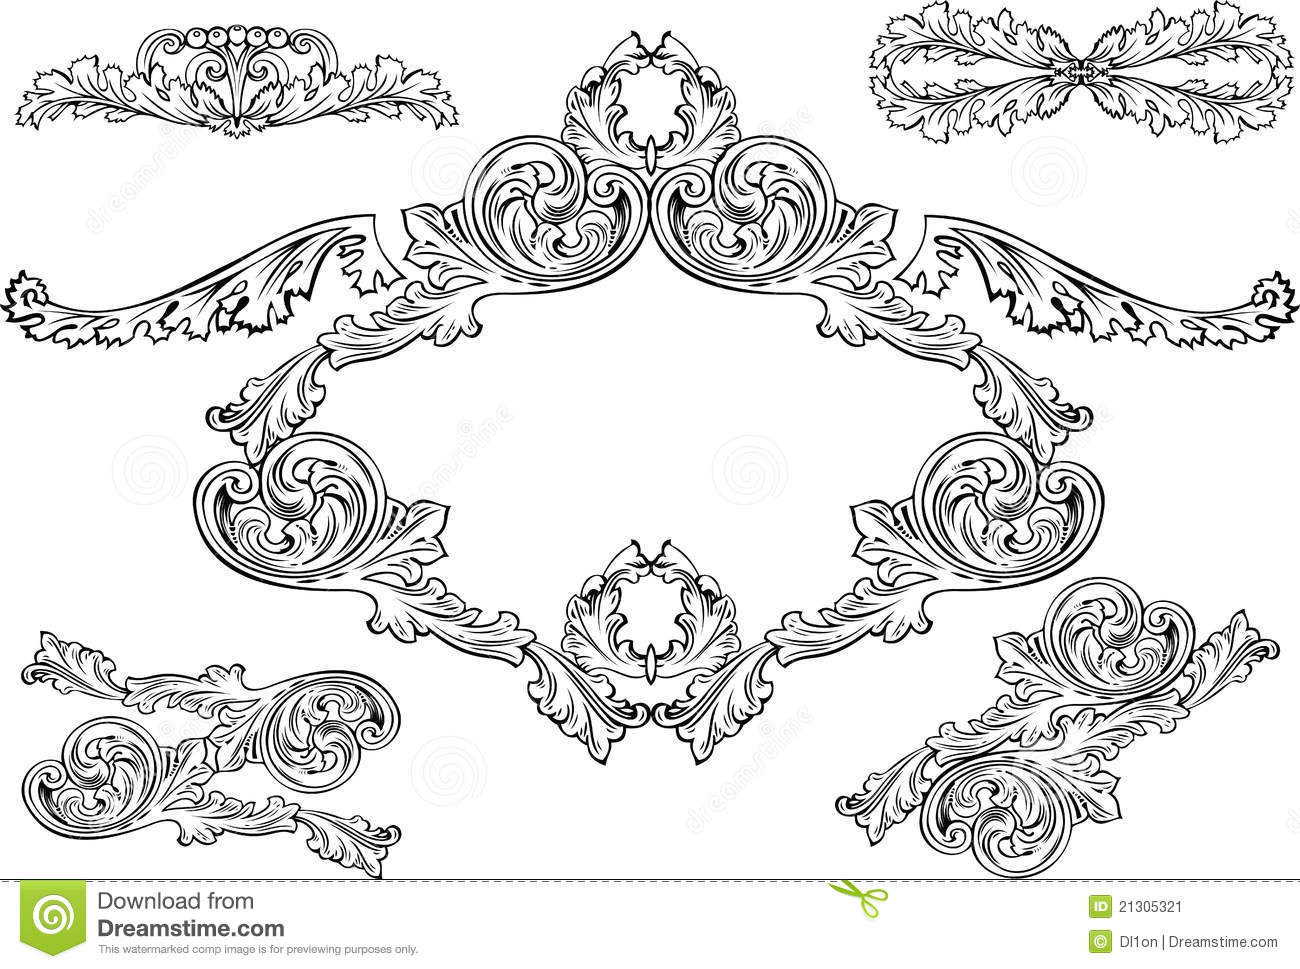 Background Design Black And White Border 2843 besides Stock Image Vintage Barocco Frames Design Elements Image21305321 additionally Stock Photo Set Seven Hand Drawn Anchors Tattoo Style Image40363250 also  on wedding day invitation